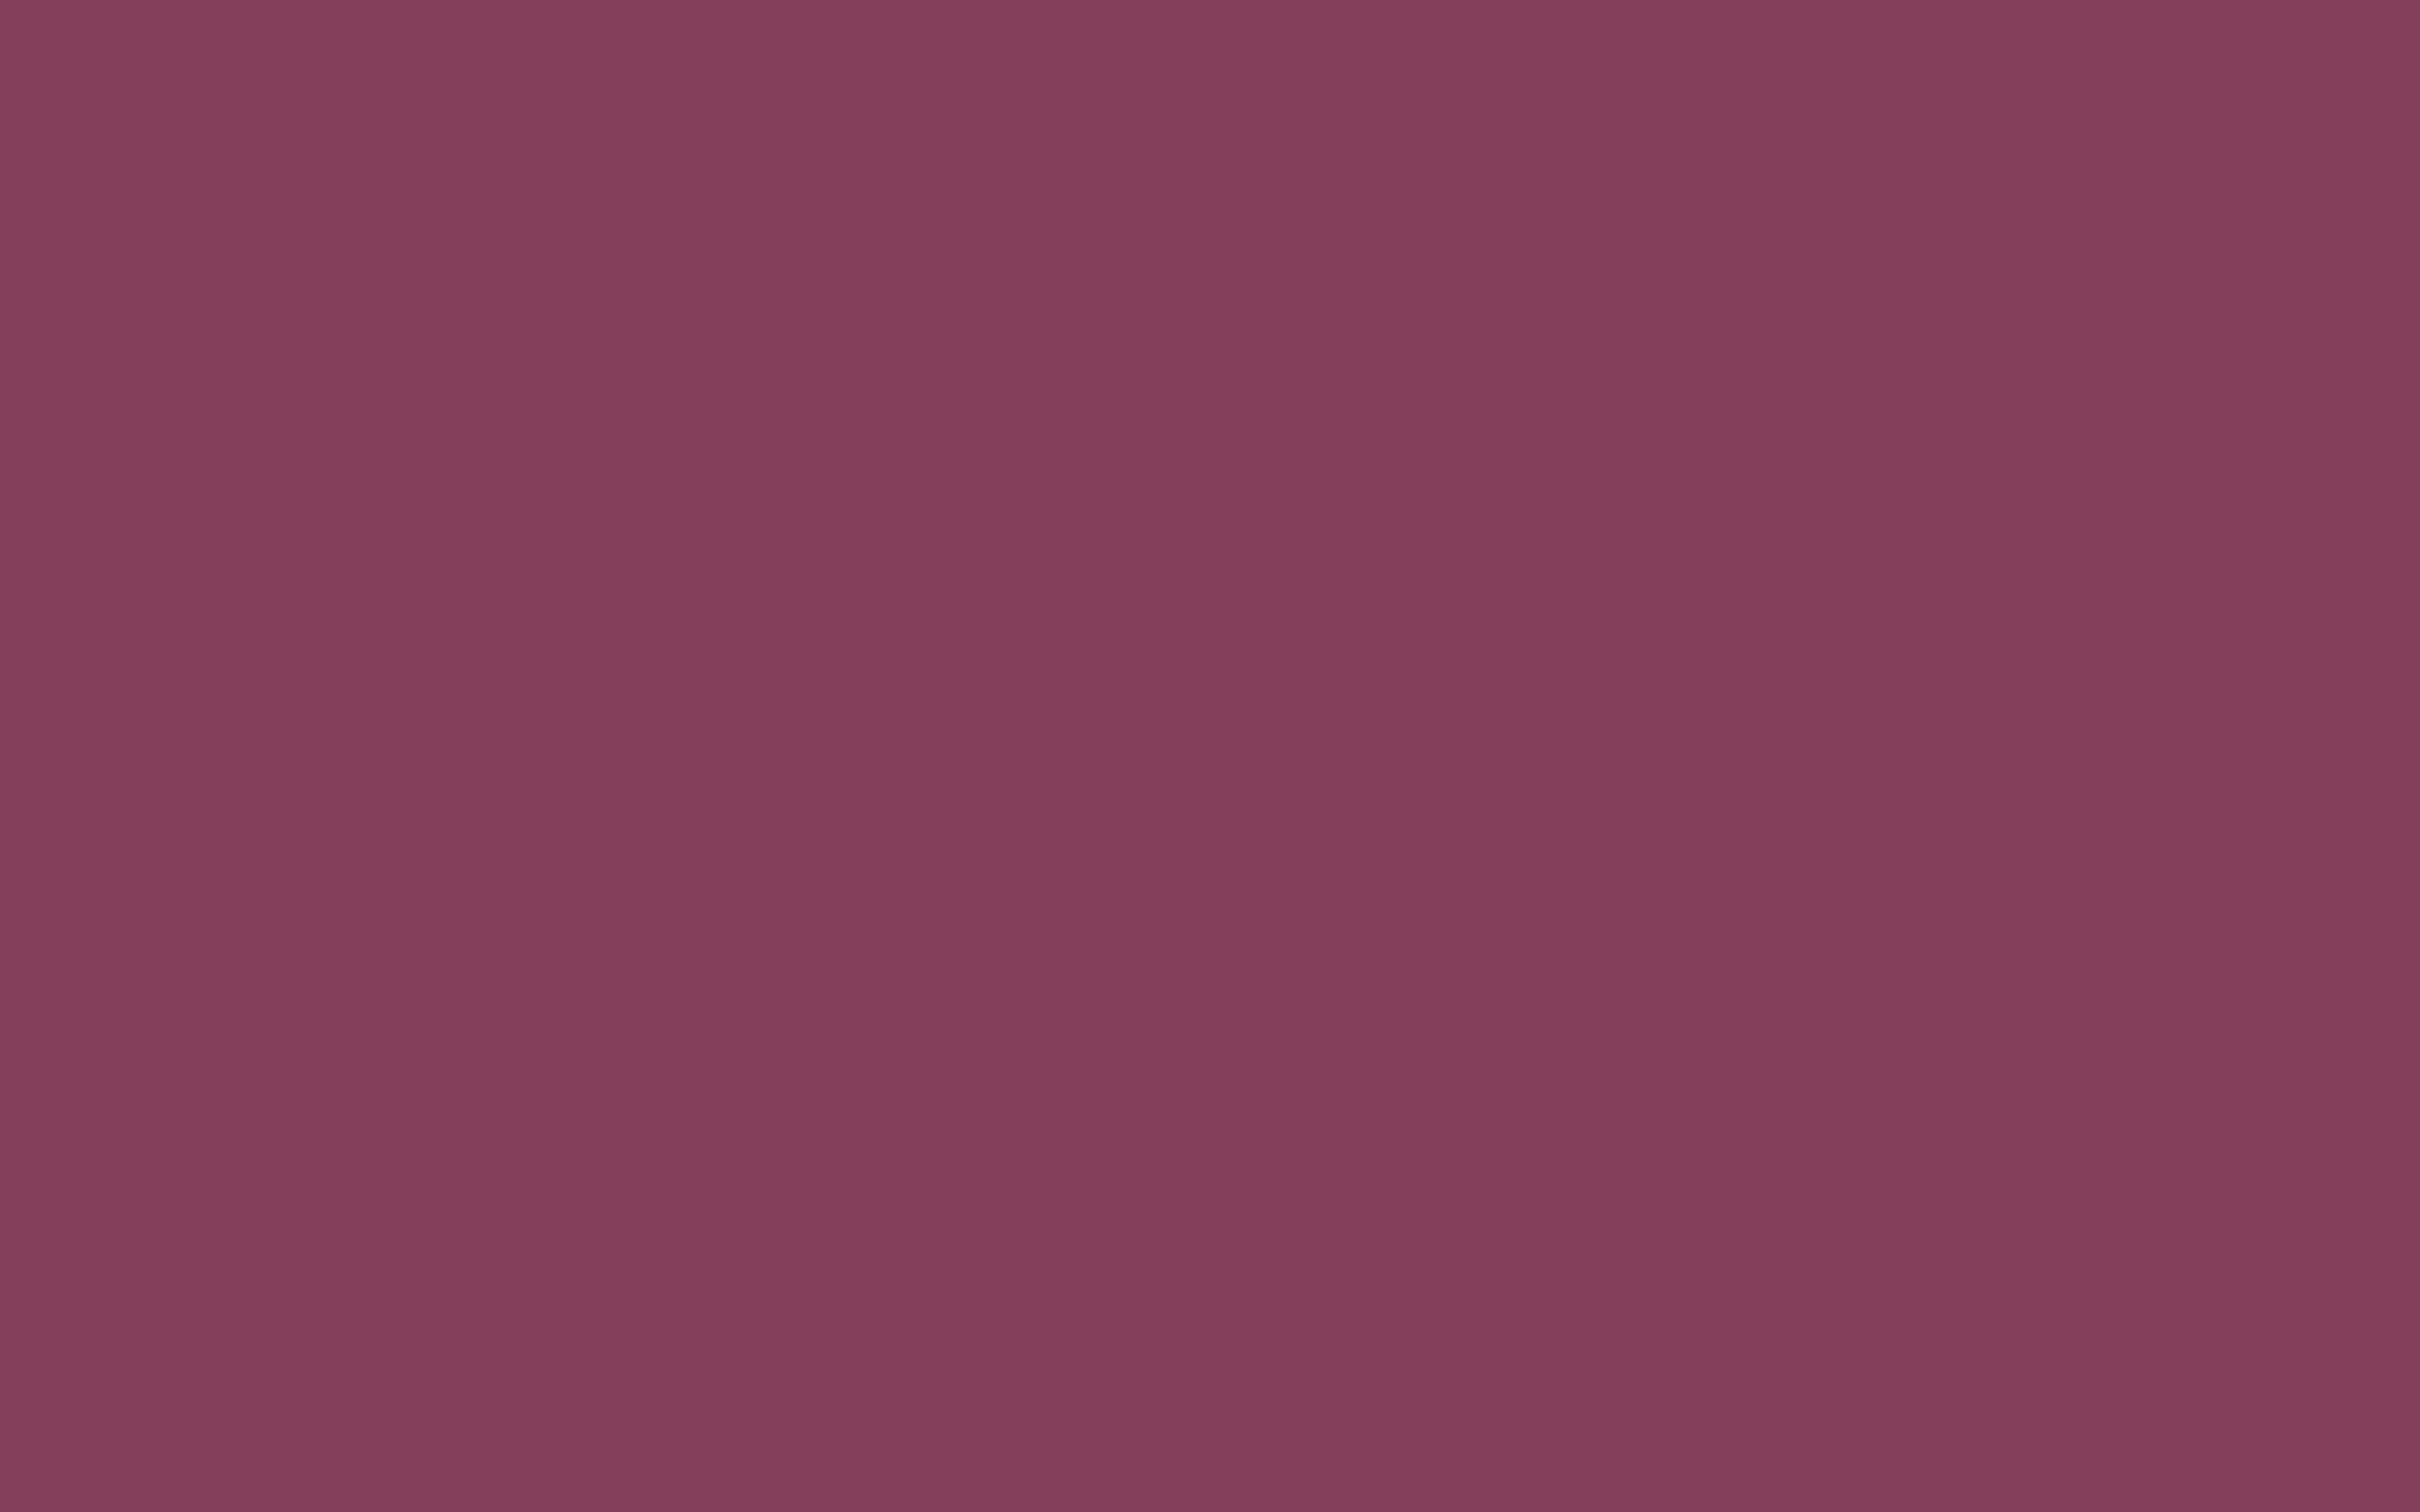 2560x1600 Deep Ruby Solid Color Background